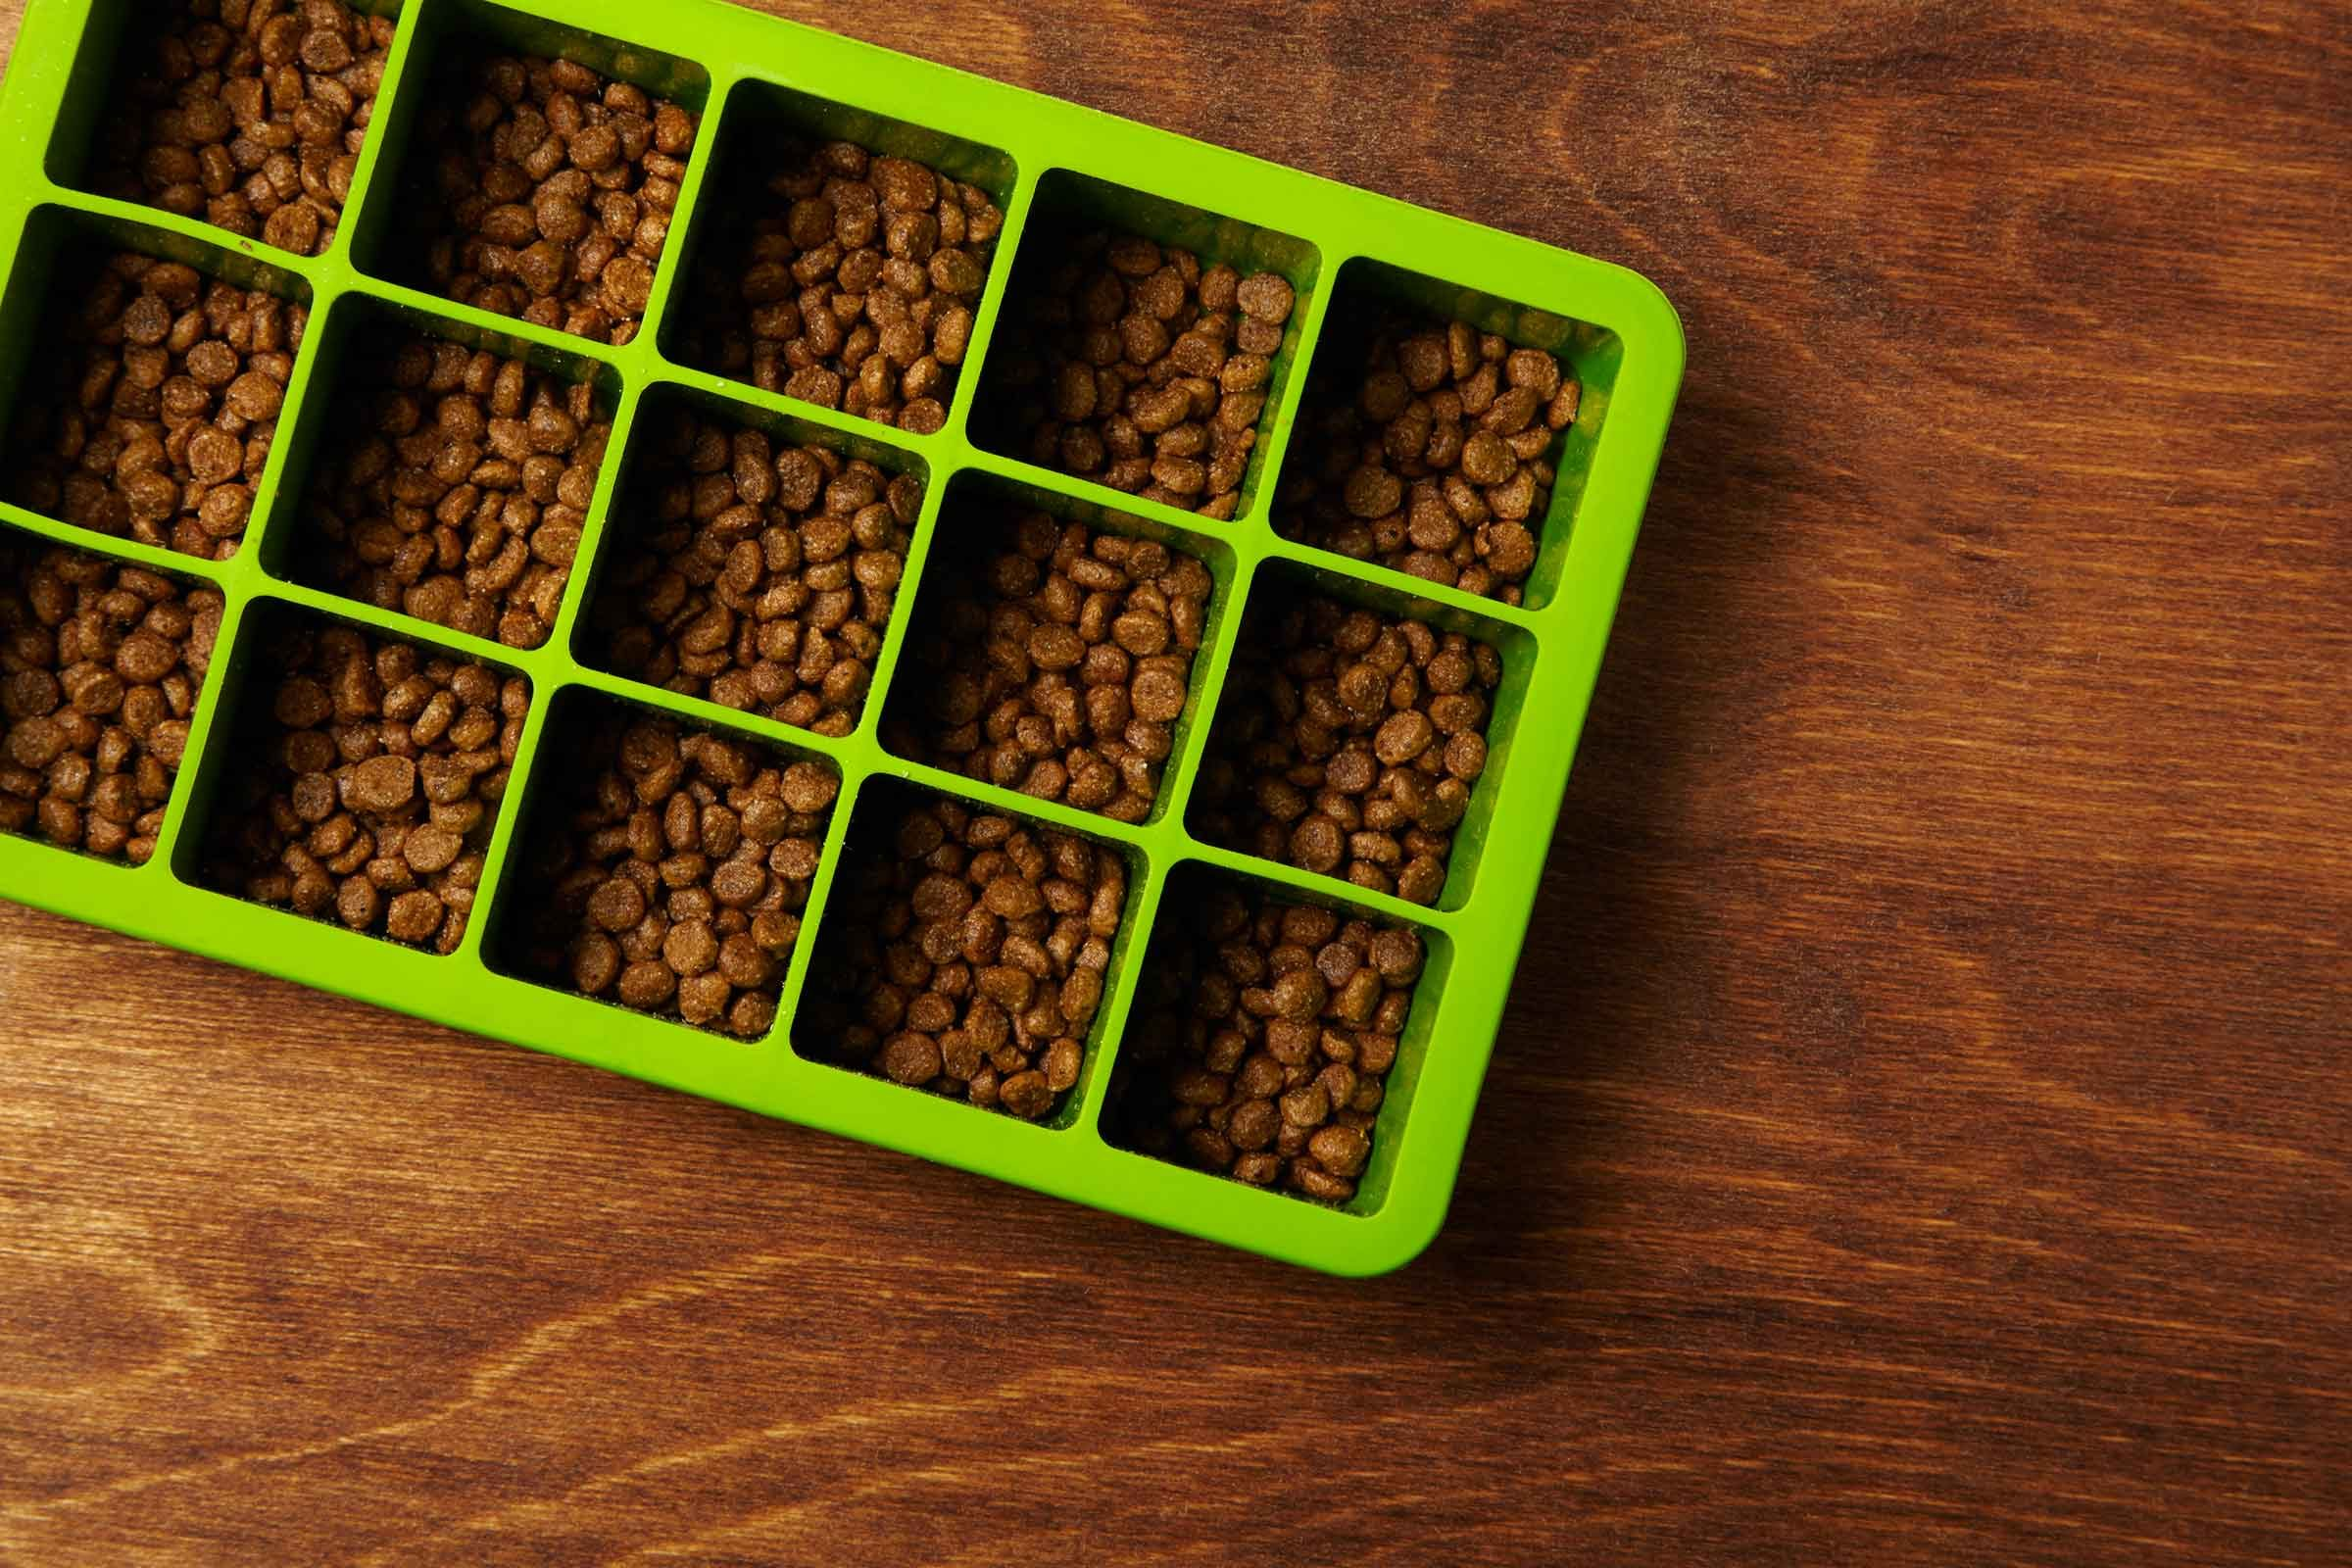 9 Genius Ice Cube Tray Uses Readers Digest